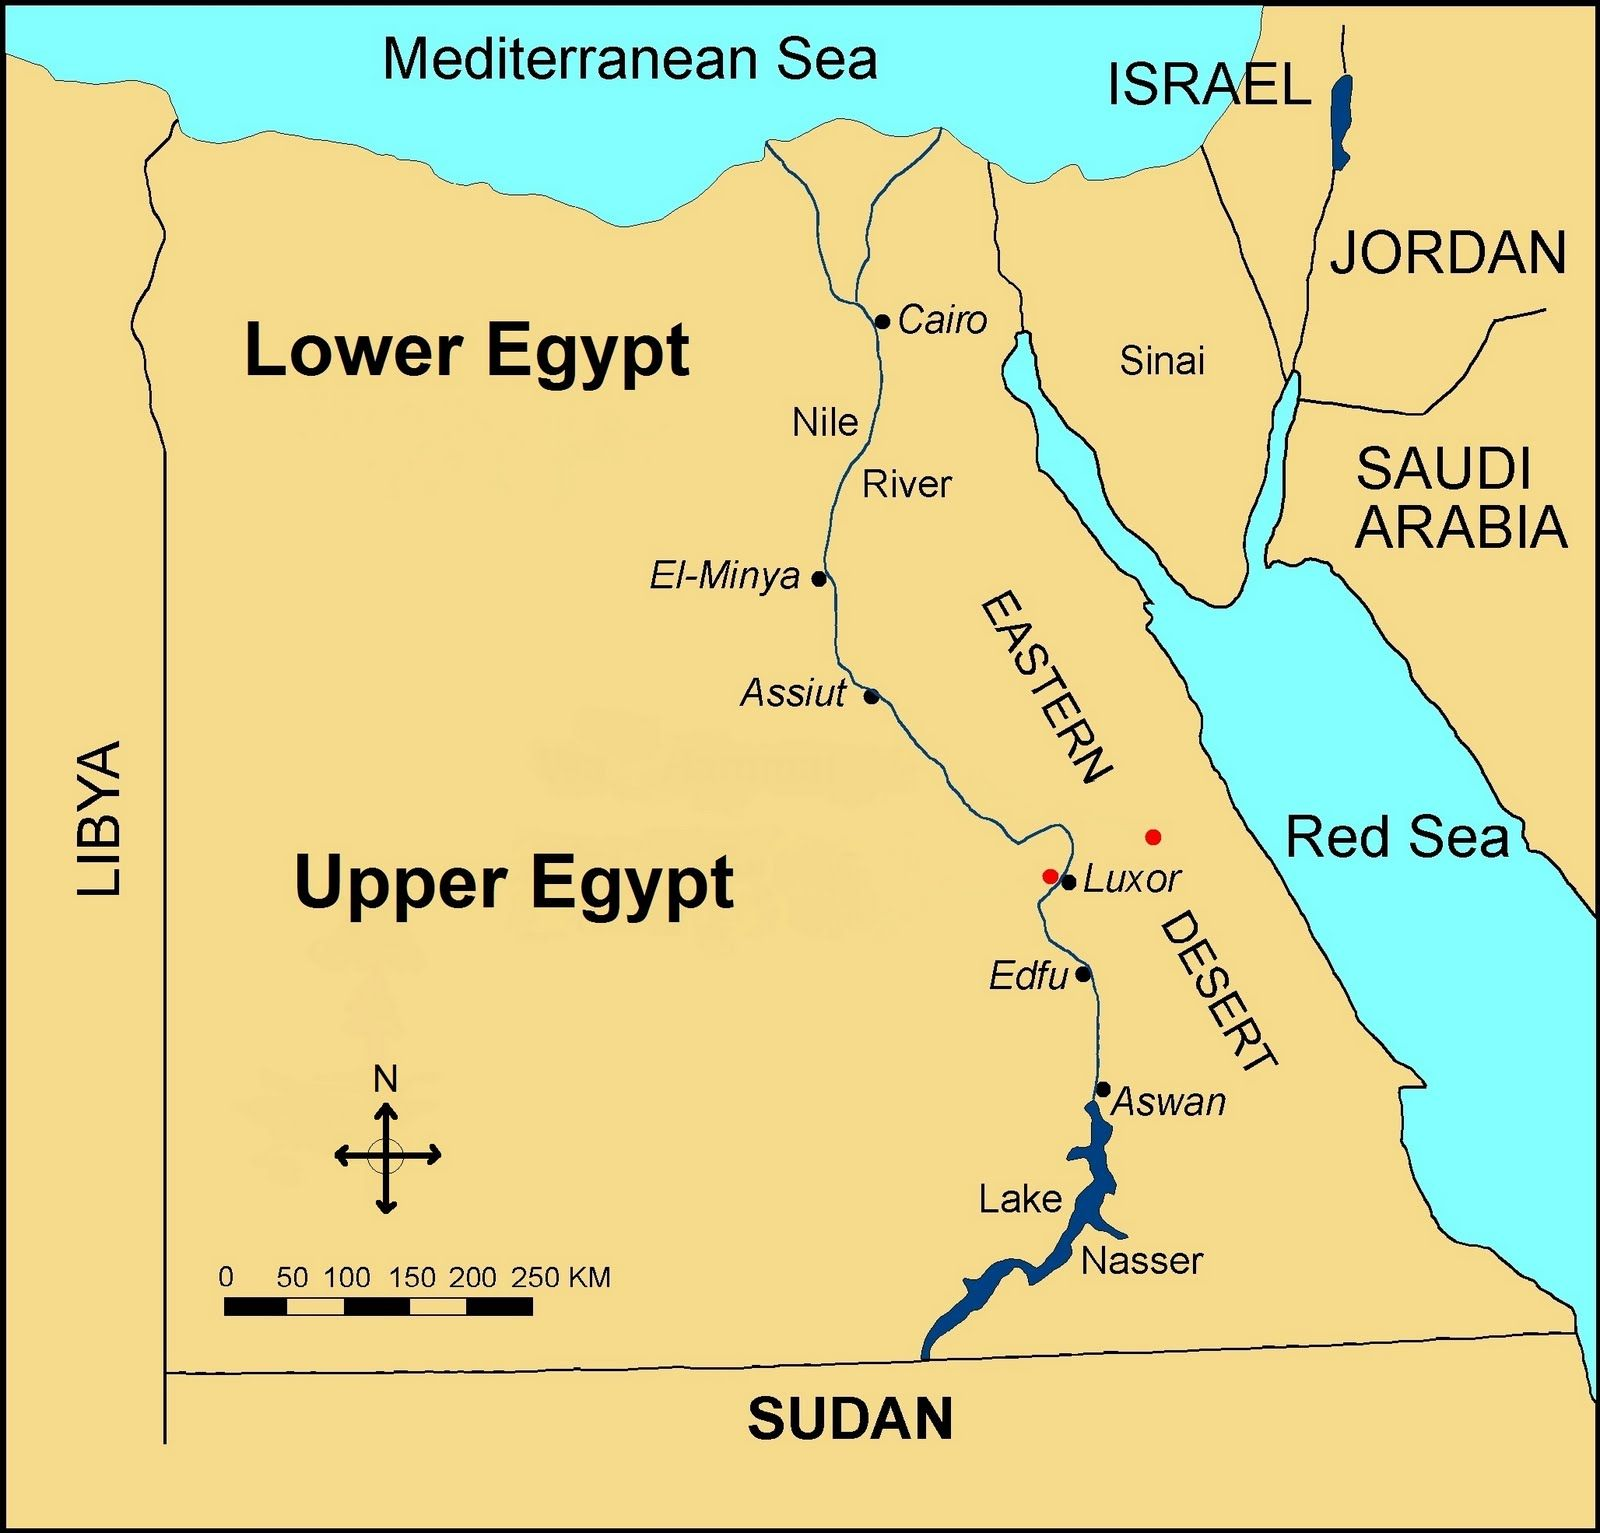 Ancient Egypt was divided into two regions: Upper and Lower Egypt